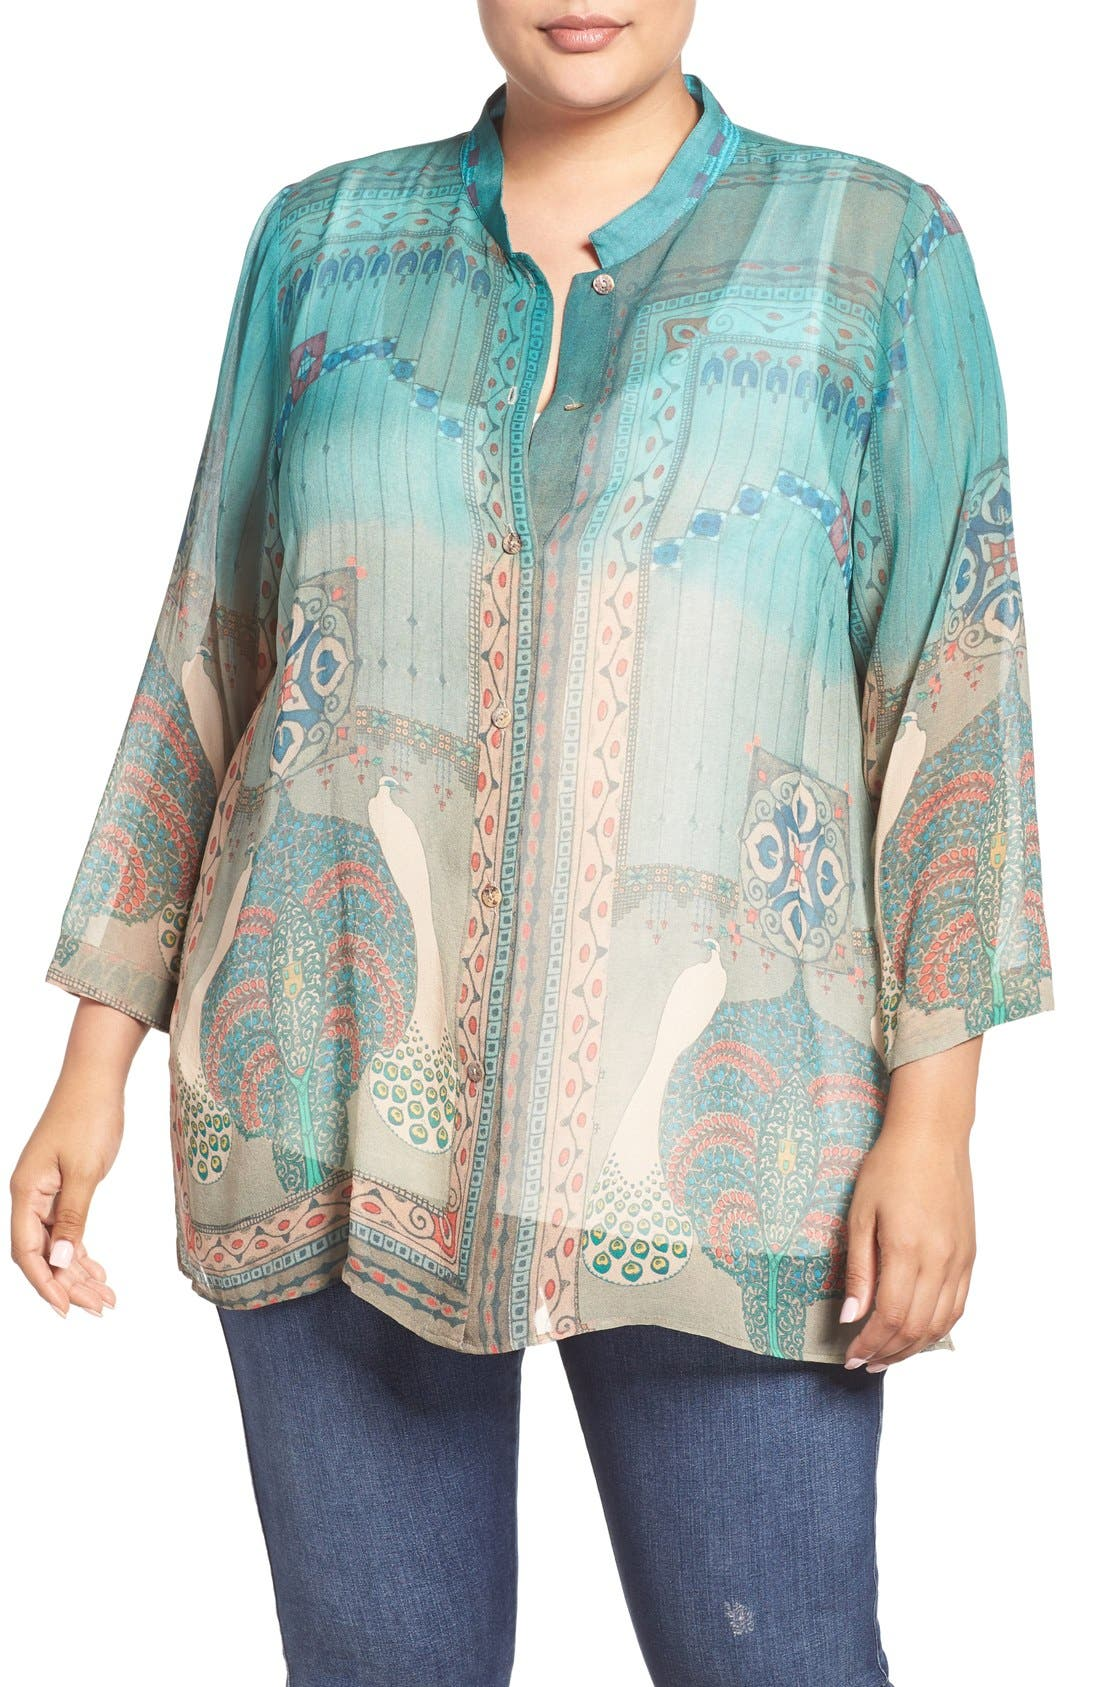 CITRON Peacock Print Silk Blouse